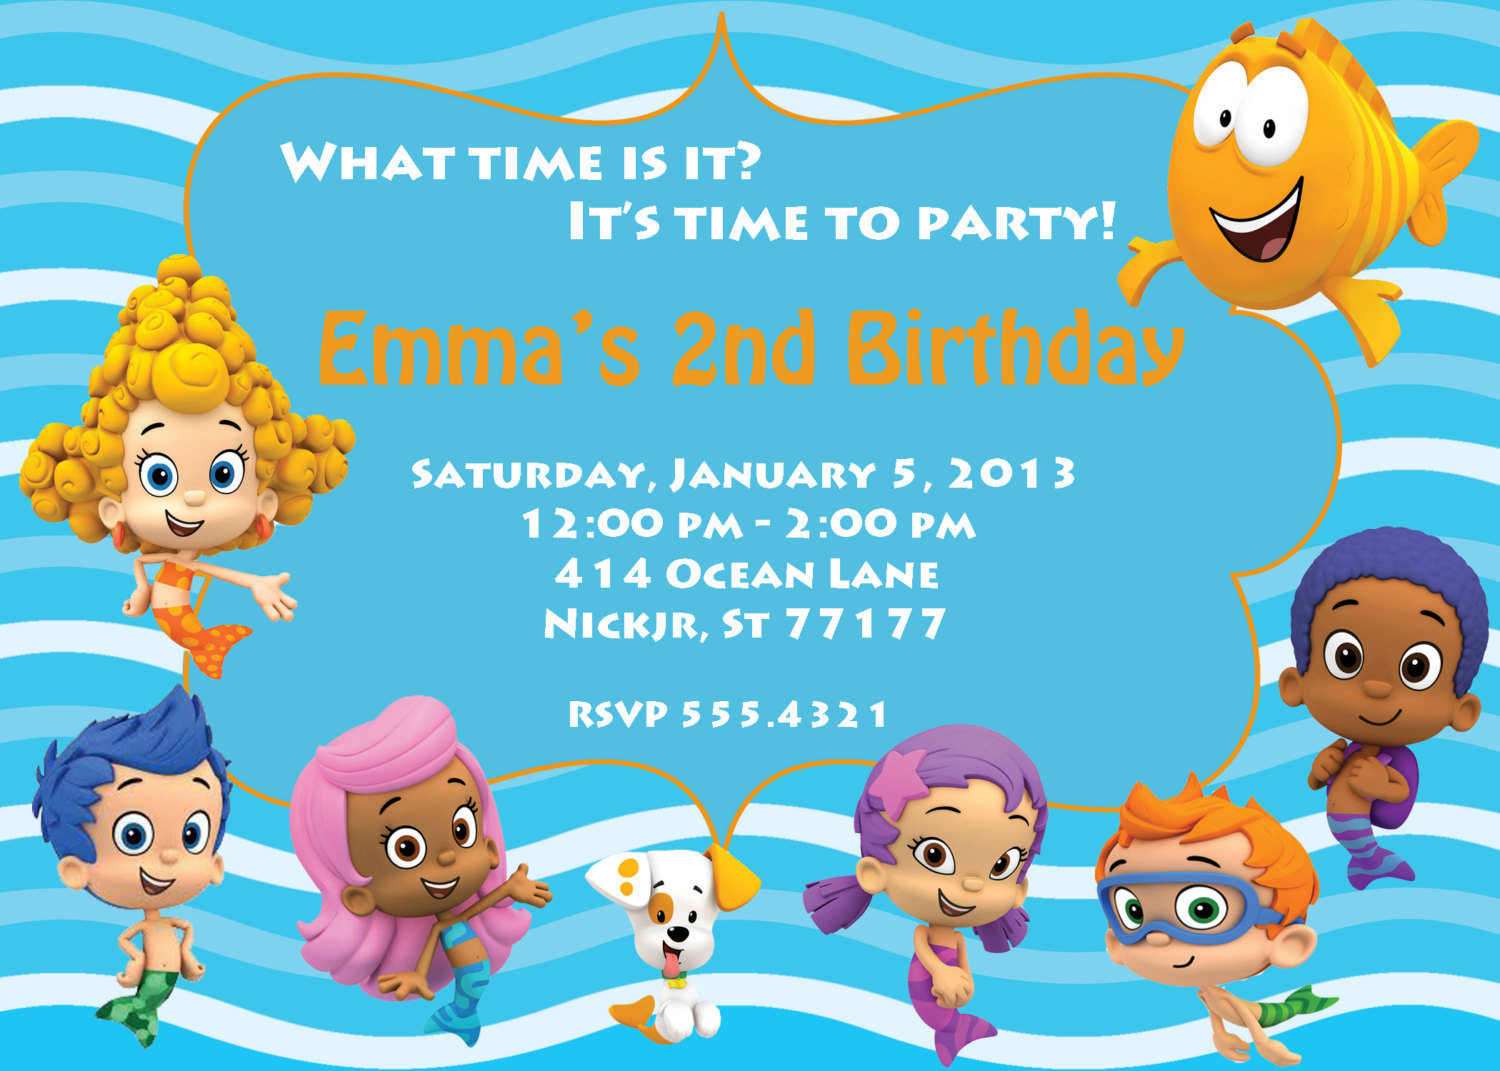 bubble guppies birthday invitation template ; bubble-guppies-birthday-invitations-including-exceptional-Birthday-Invitation-Templates-with-full-of-pleasure-environment-20